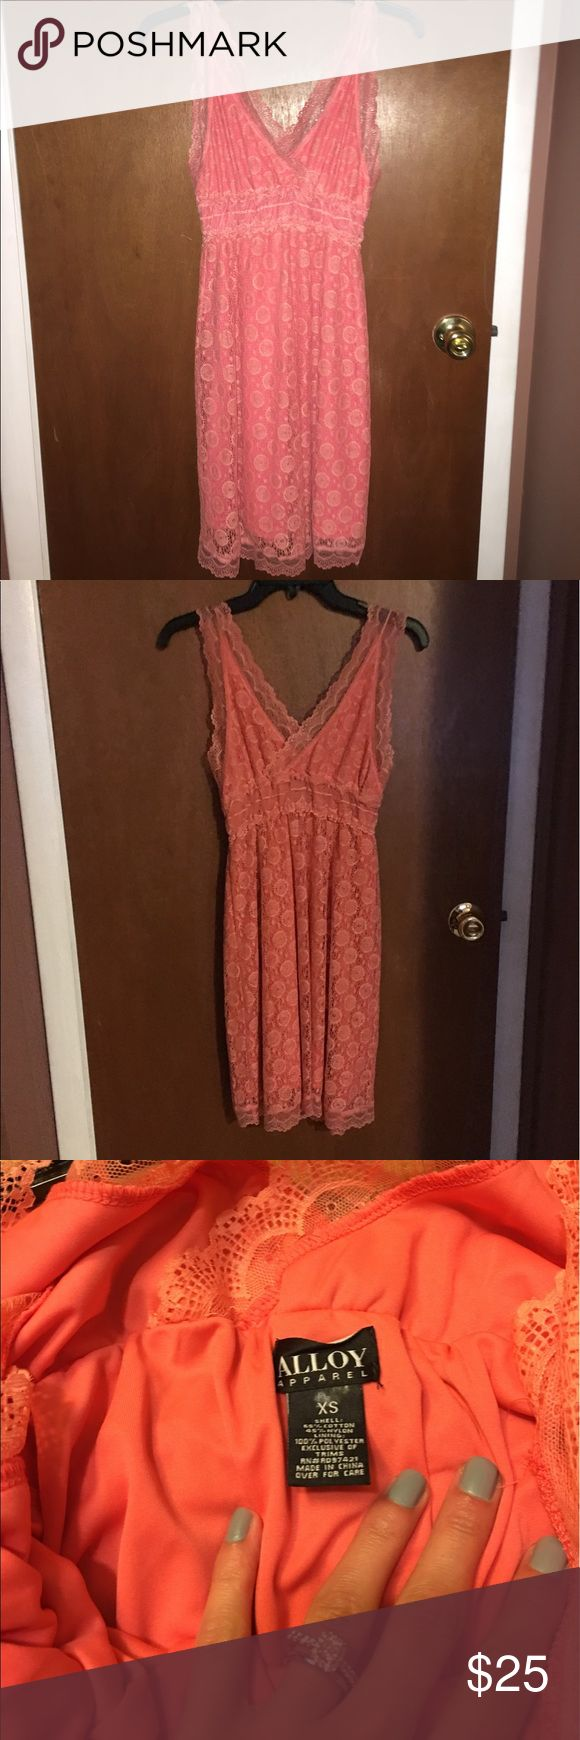 Peach/Pink Lace overlay Summer Dress New without tags Alloy pink/peach lace dress.   This is perfect spring/summer dress with its cute Lace overlay. It's light weight and fun to wear!   Perfect for outdoor BBQs and parties! ALLOY Dresses